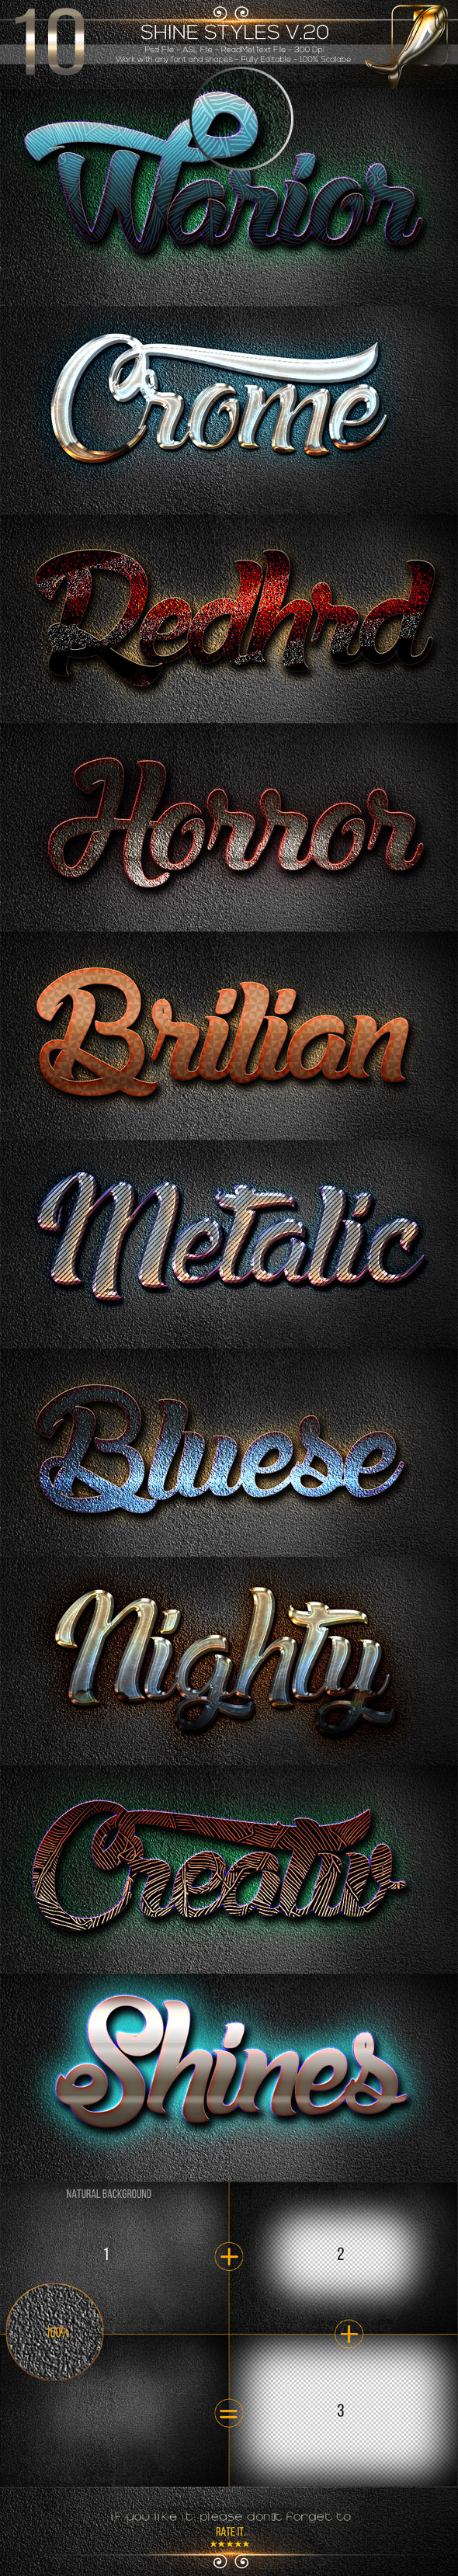 10 Shine Styles V.20 - Text Effects Styles